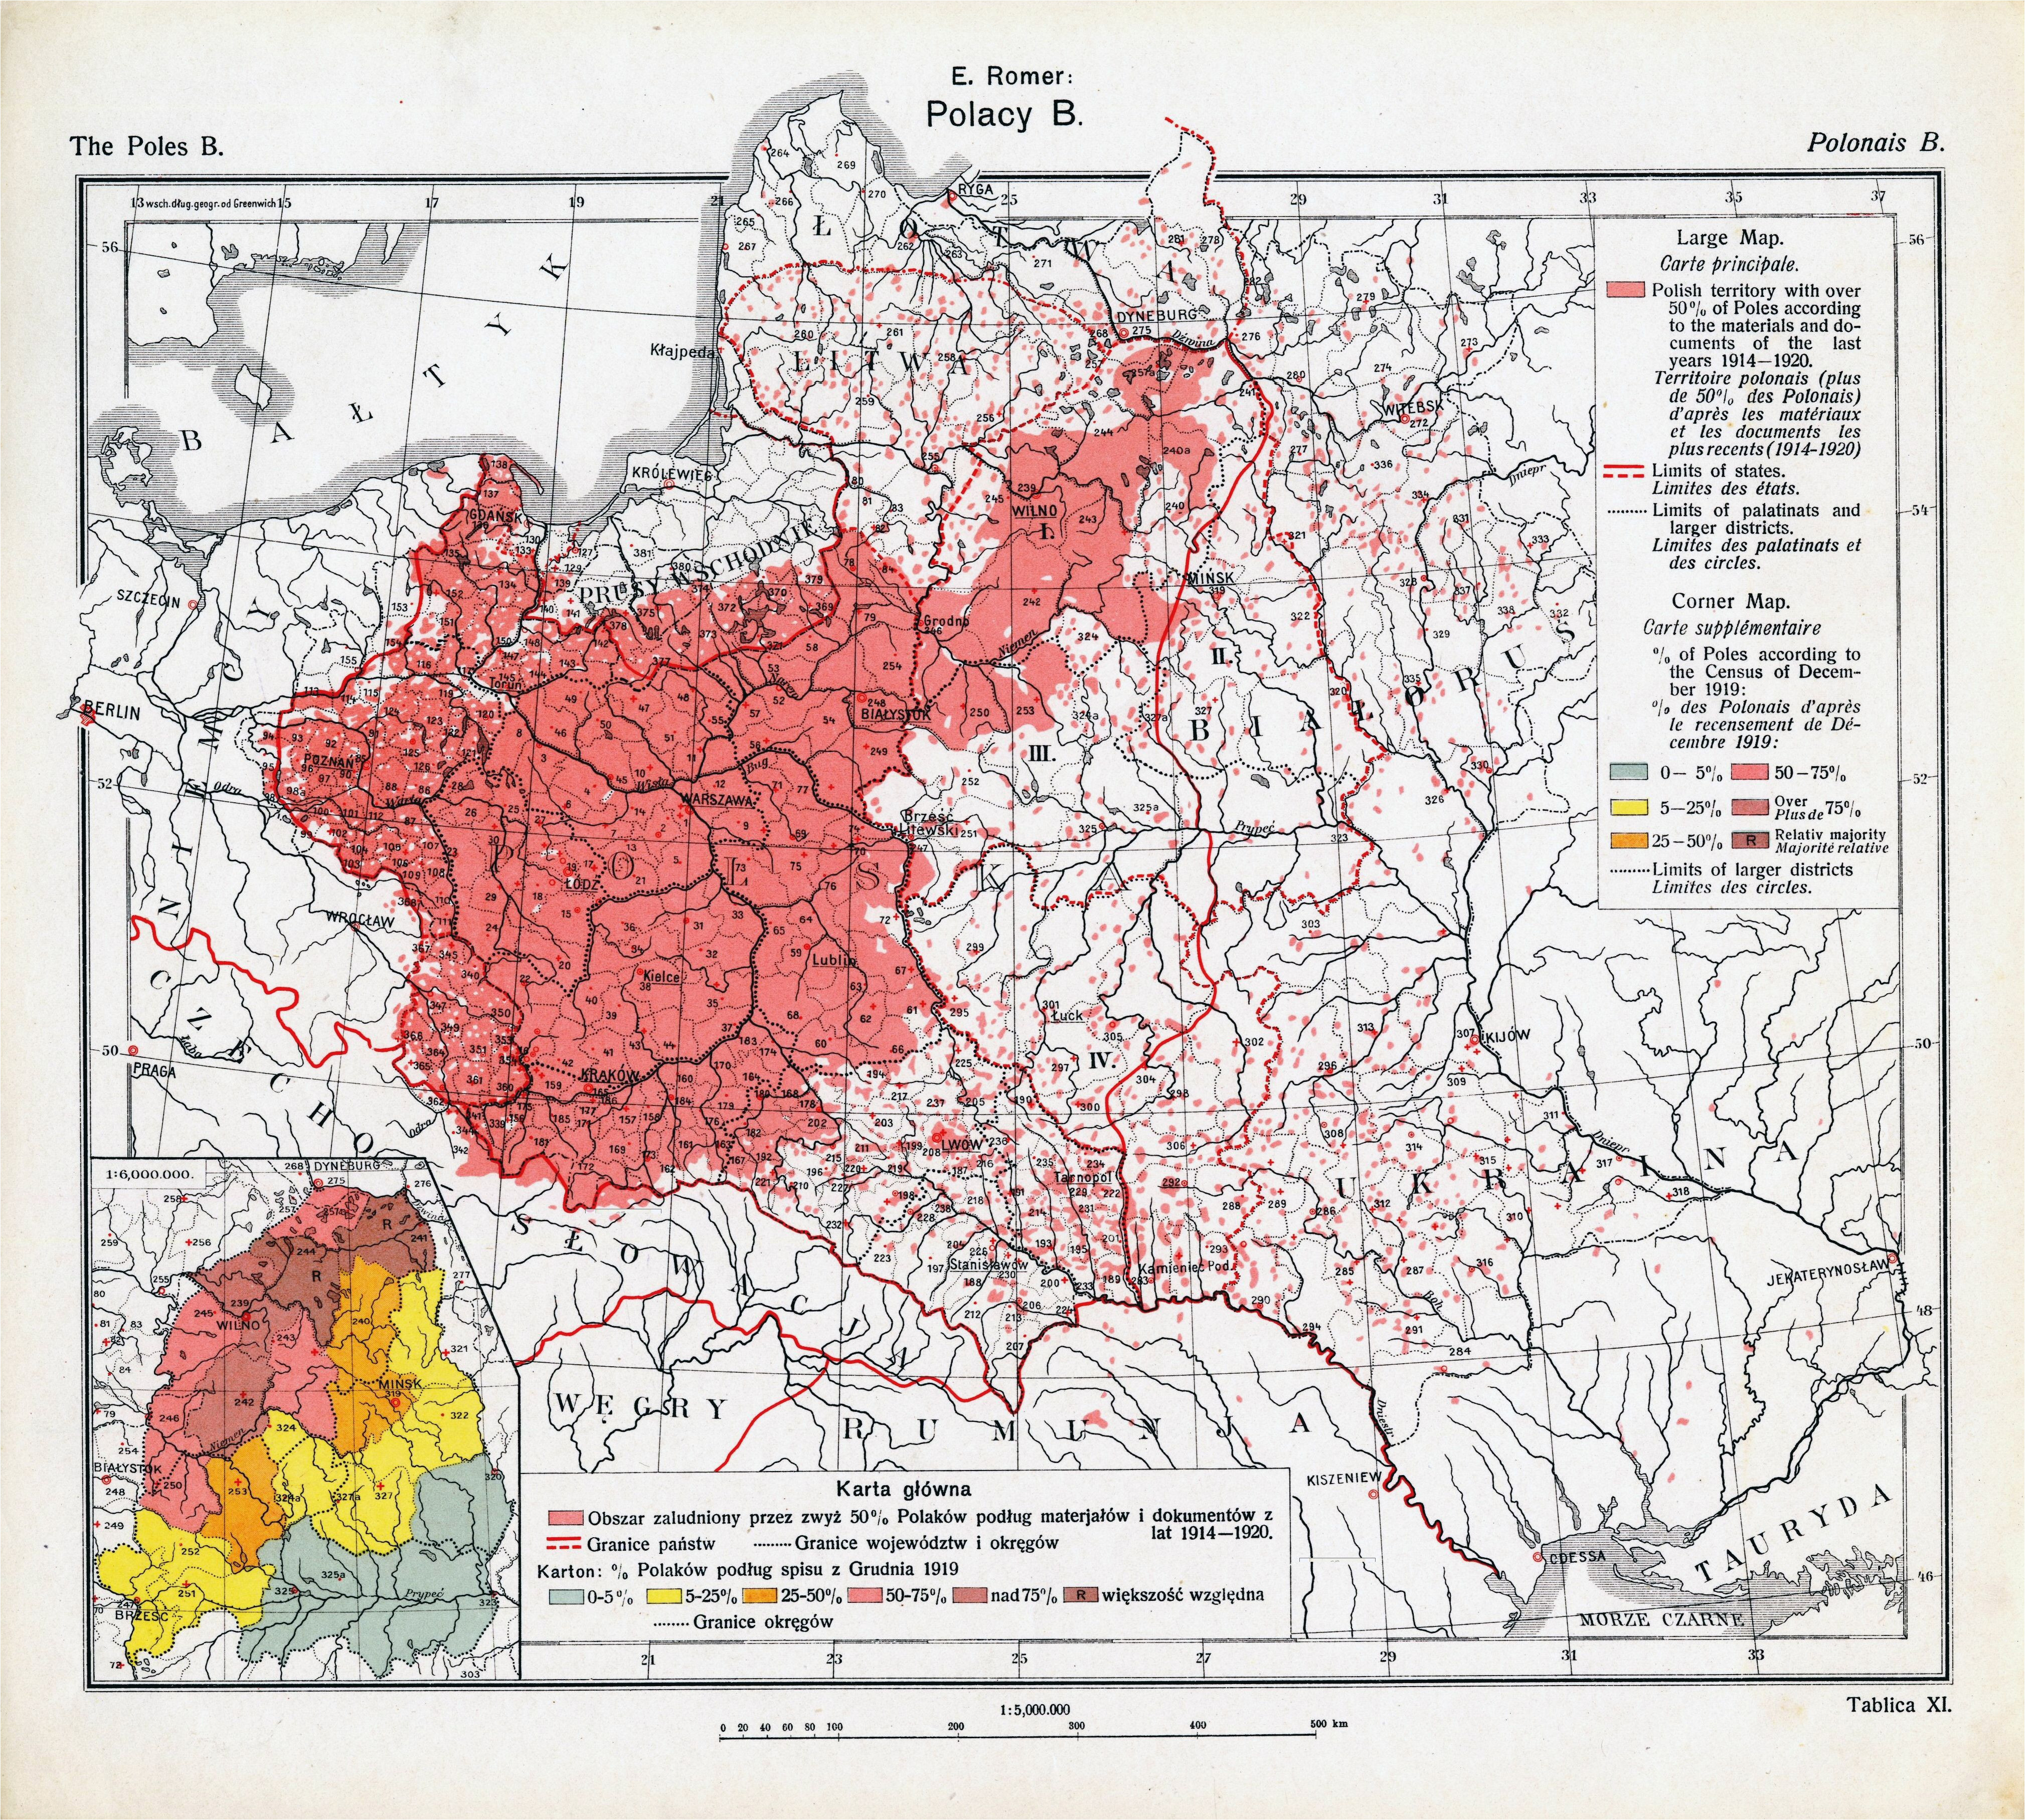 a 1921 map of polish majority areas in europe after the end